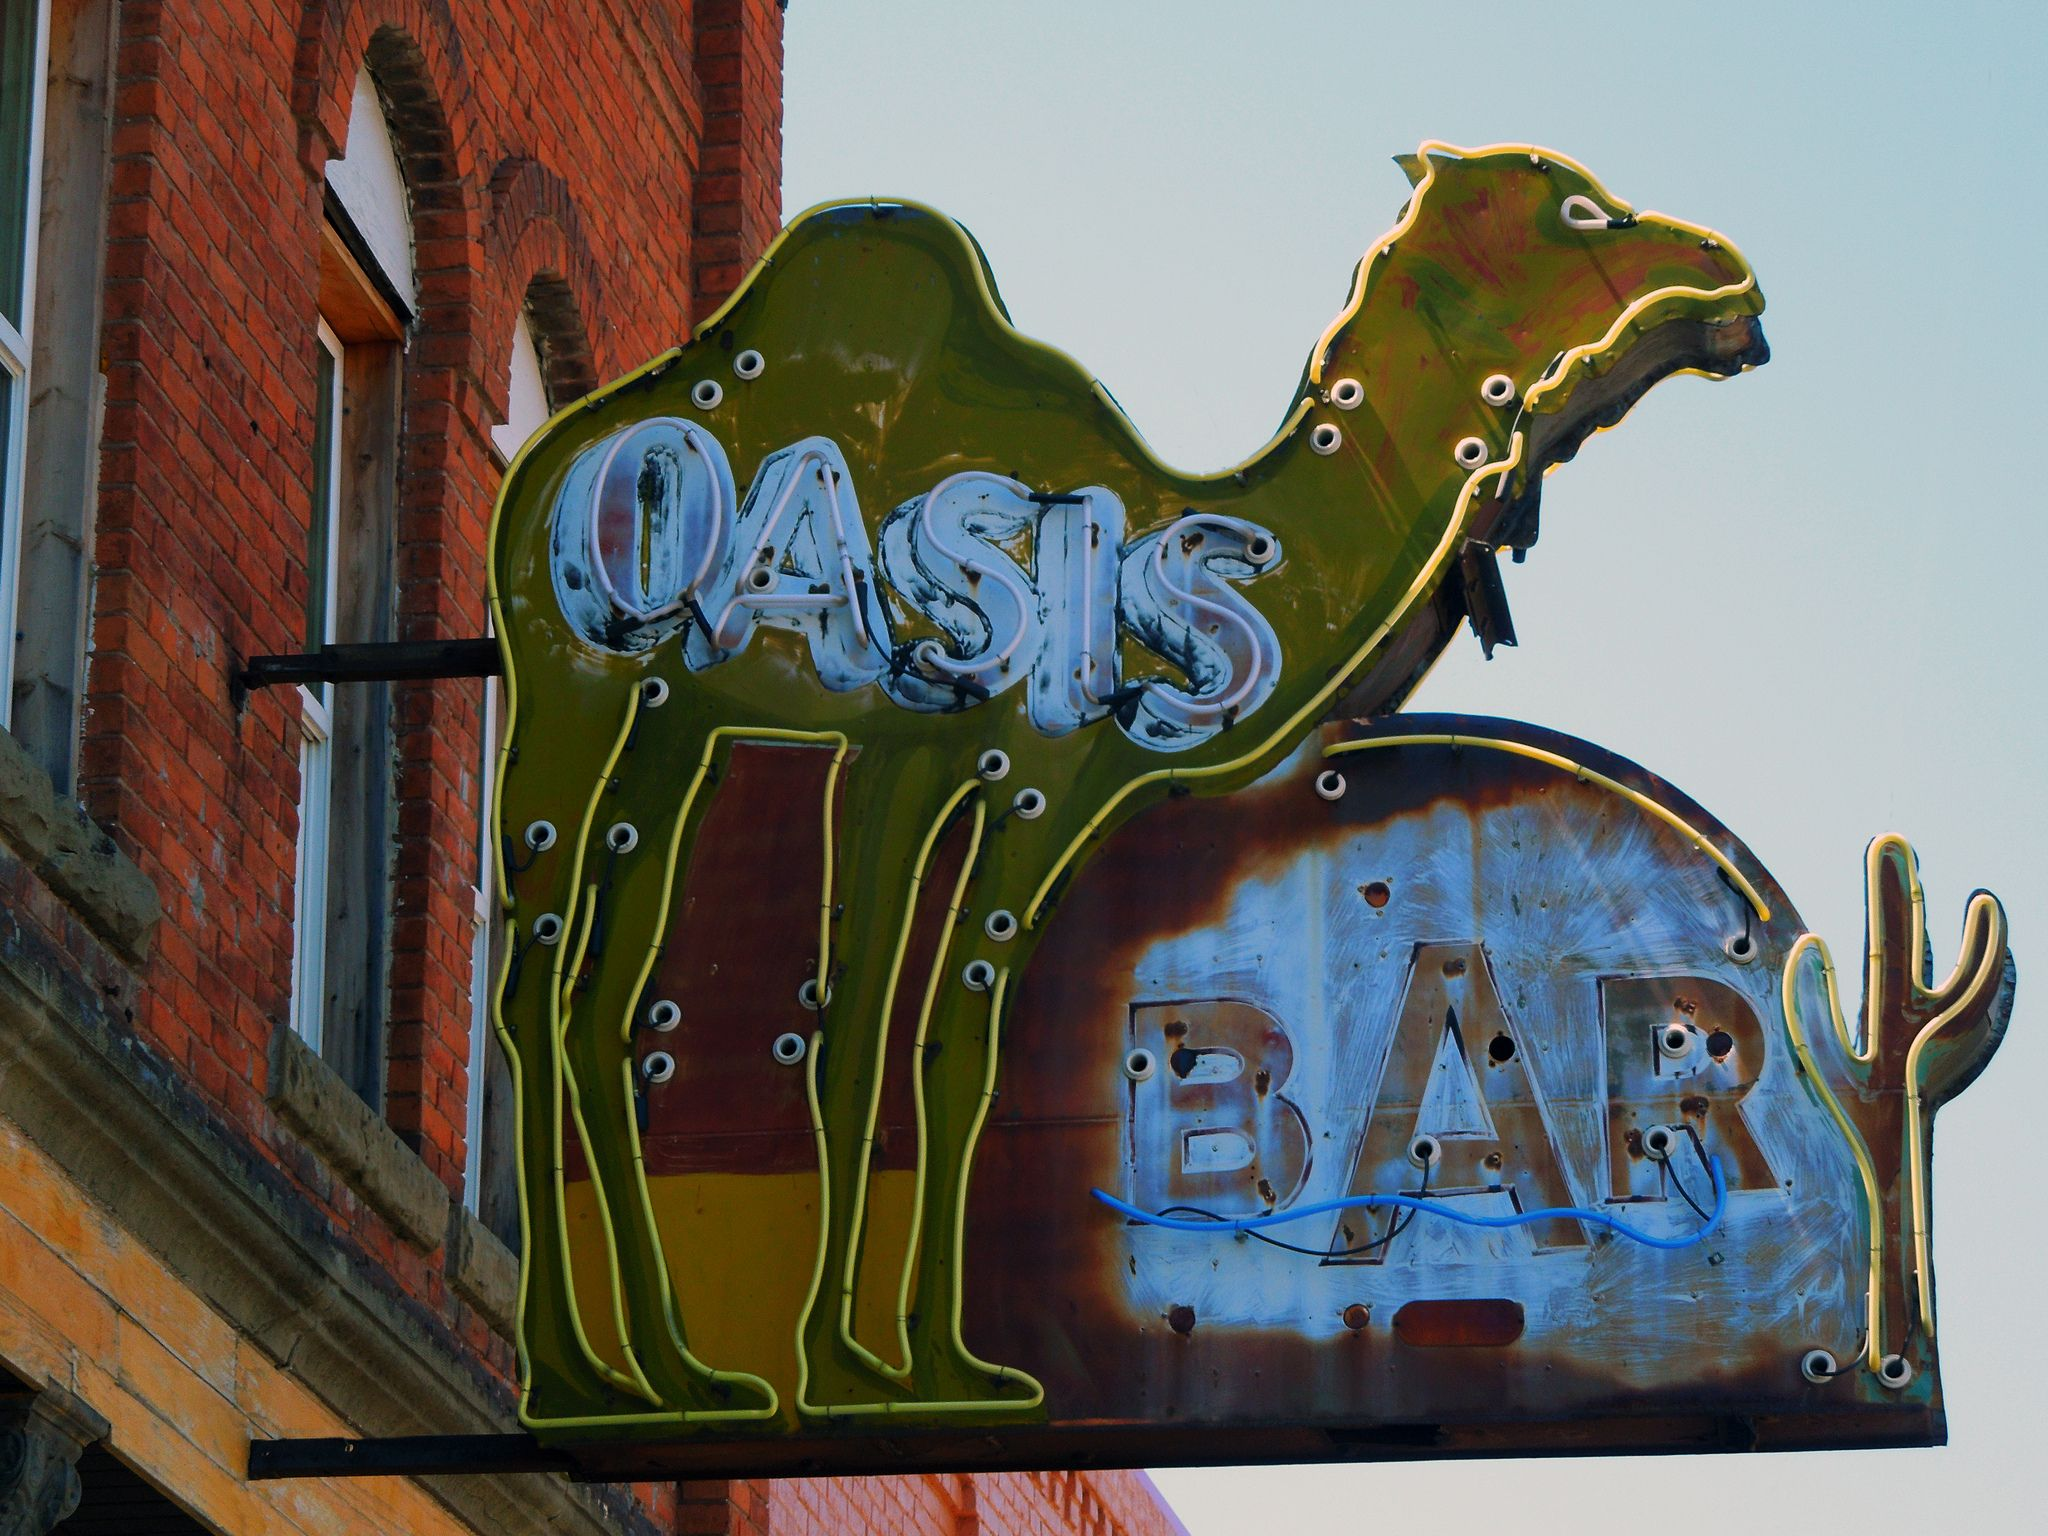 Oasis Bar   Vintage neon signs, Cool neon signs, Old neon